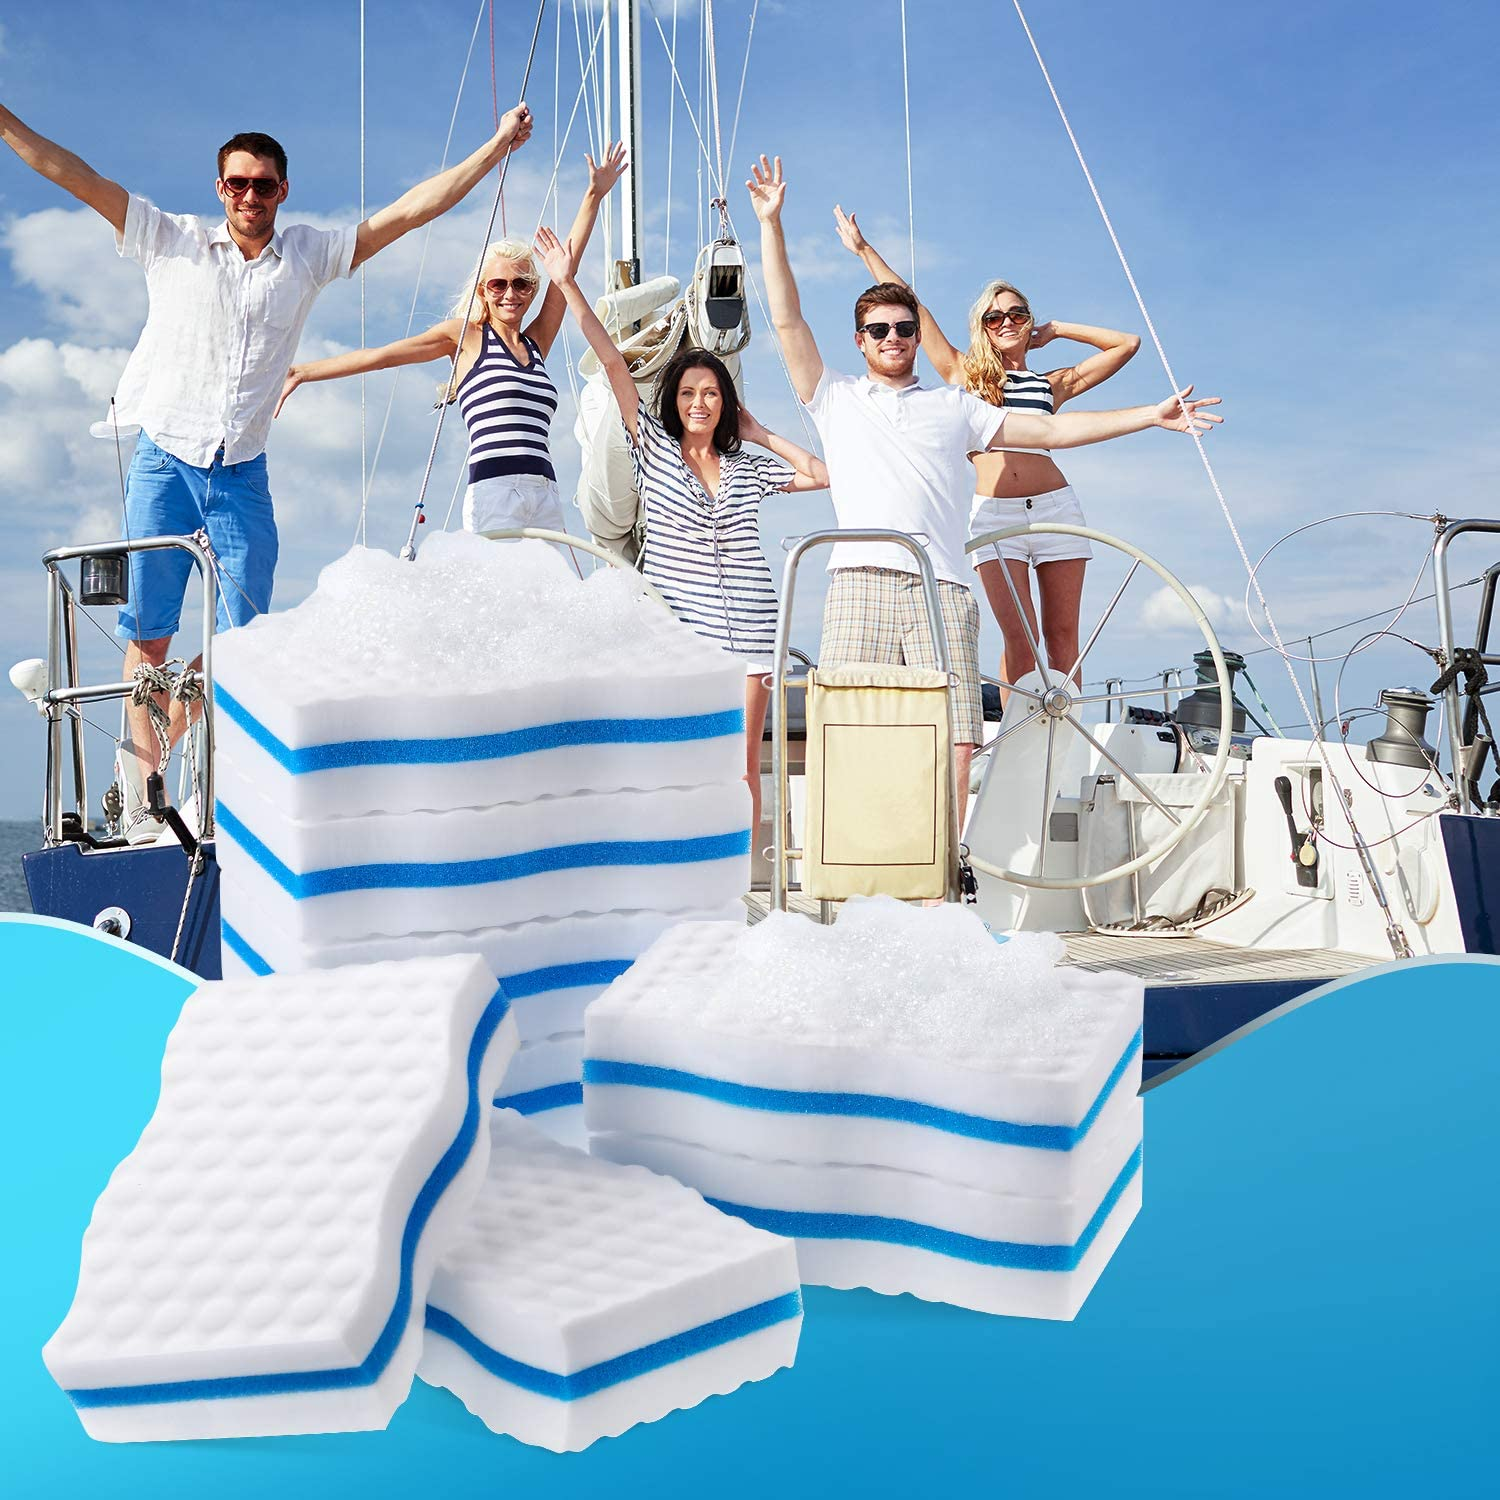 Outus 8 Pack Boat Scuff Erasers Boat Sponge for Cleaning Streak Deck Marks Magic Boating Accessories